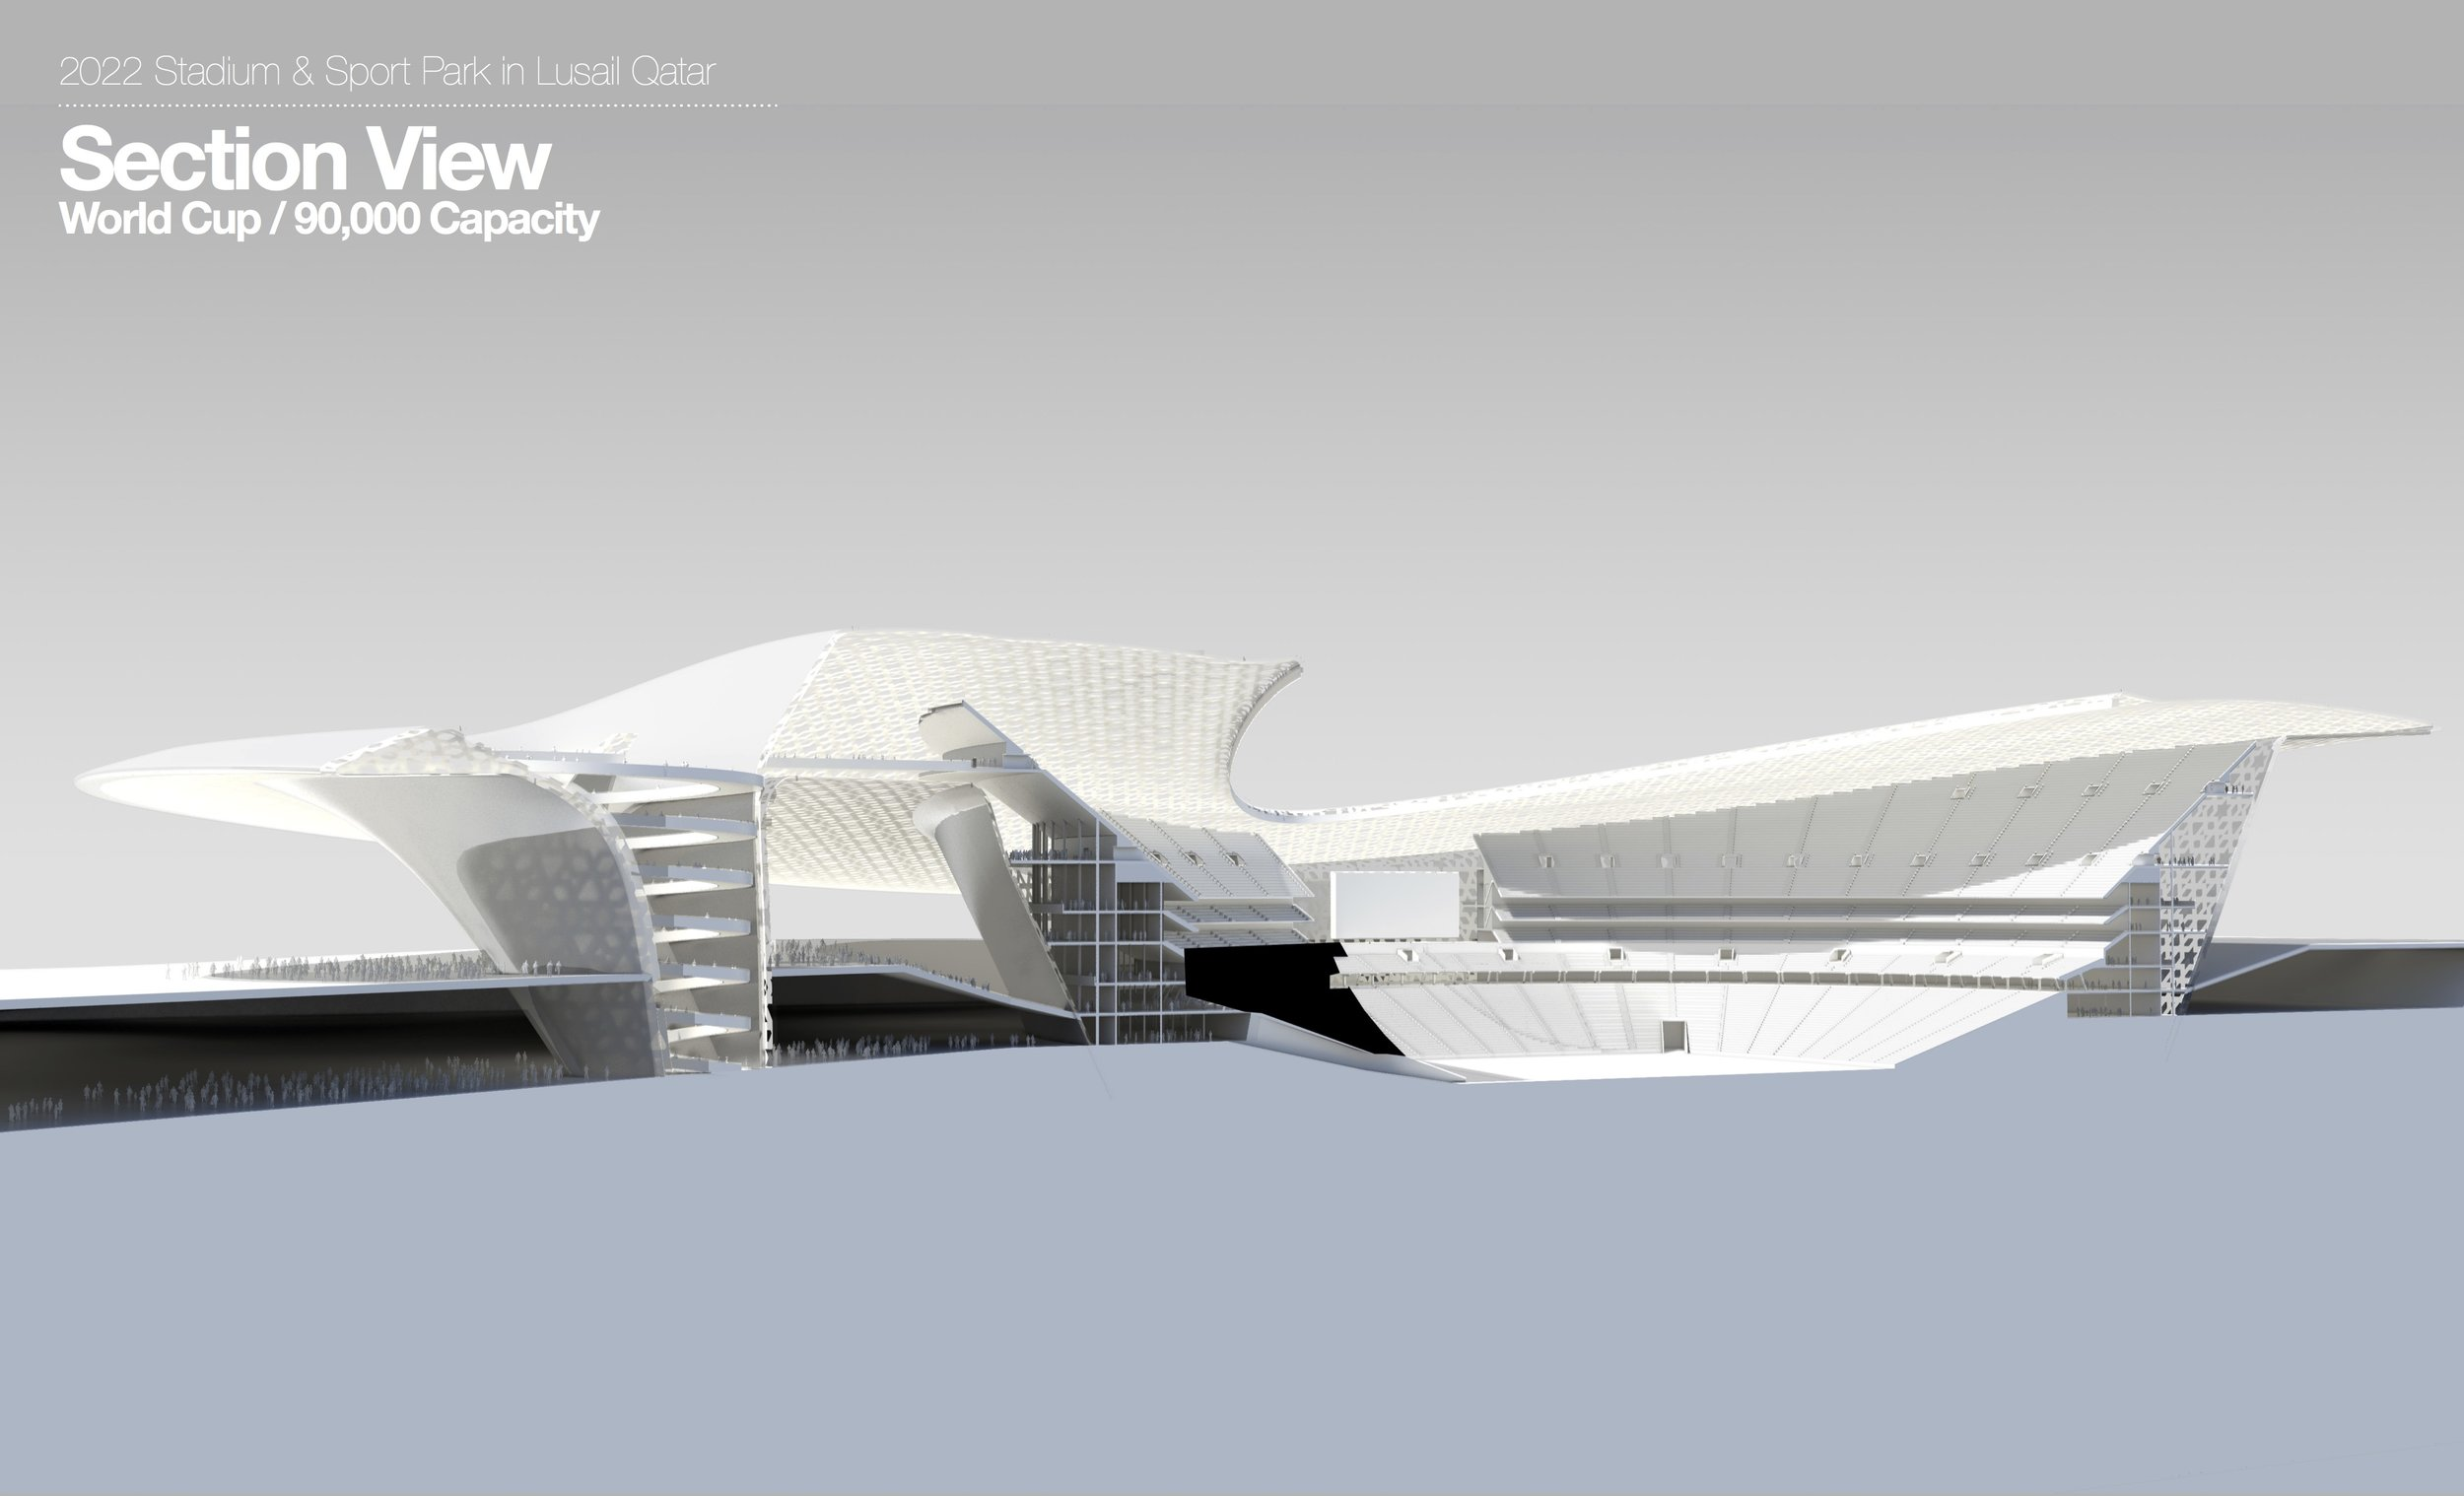 130730 Qatar_Main_Stadium_Concept_section view 4.jpg